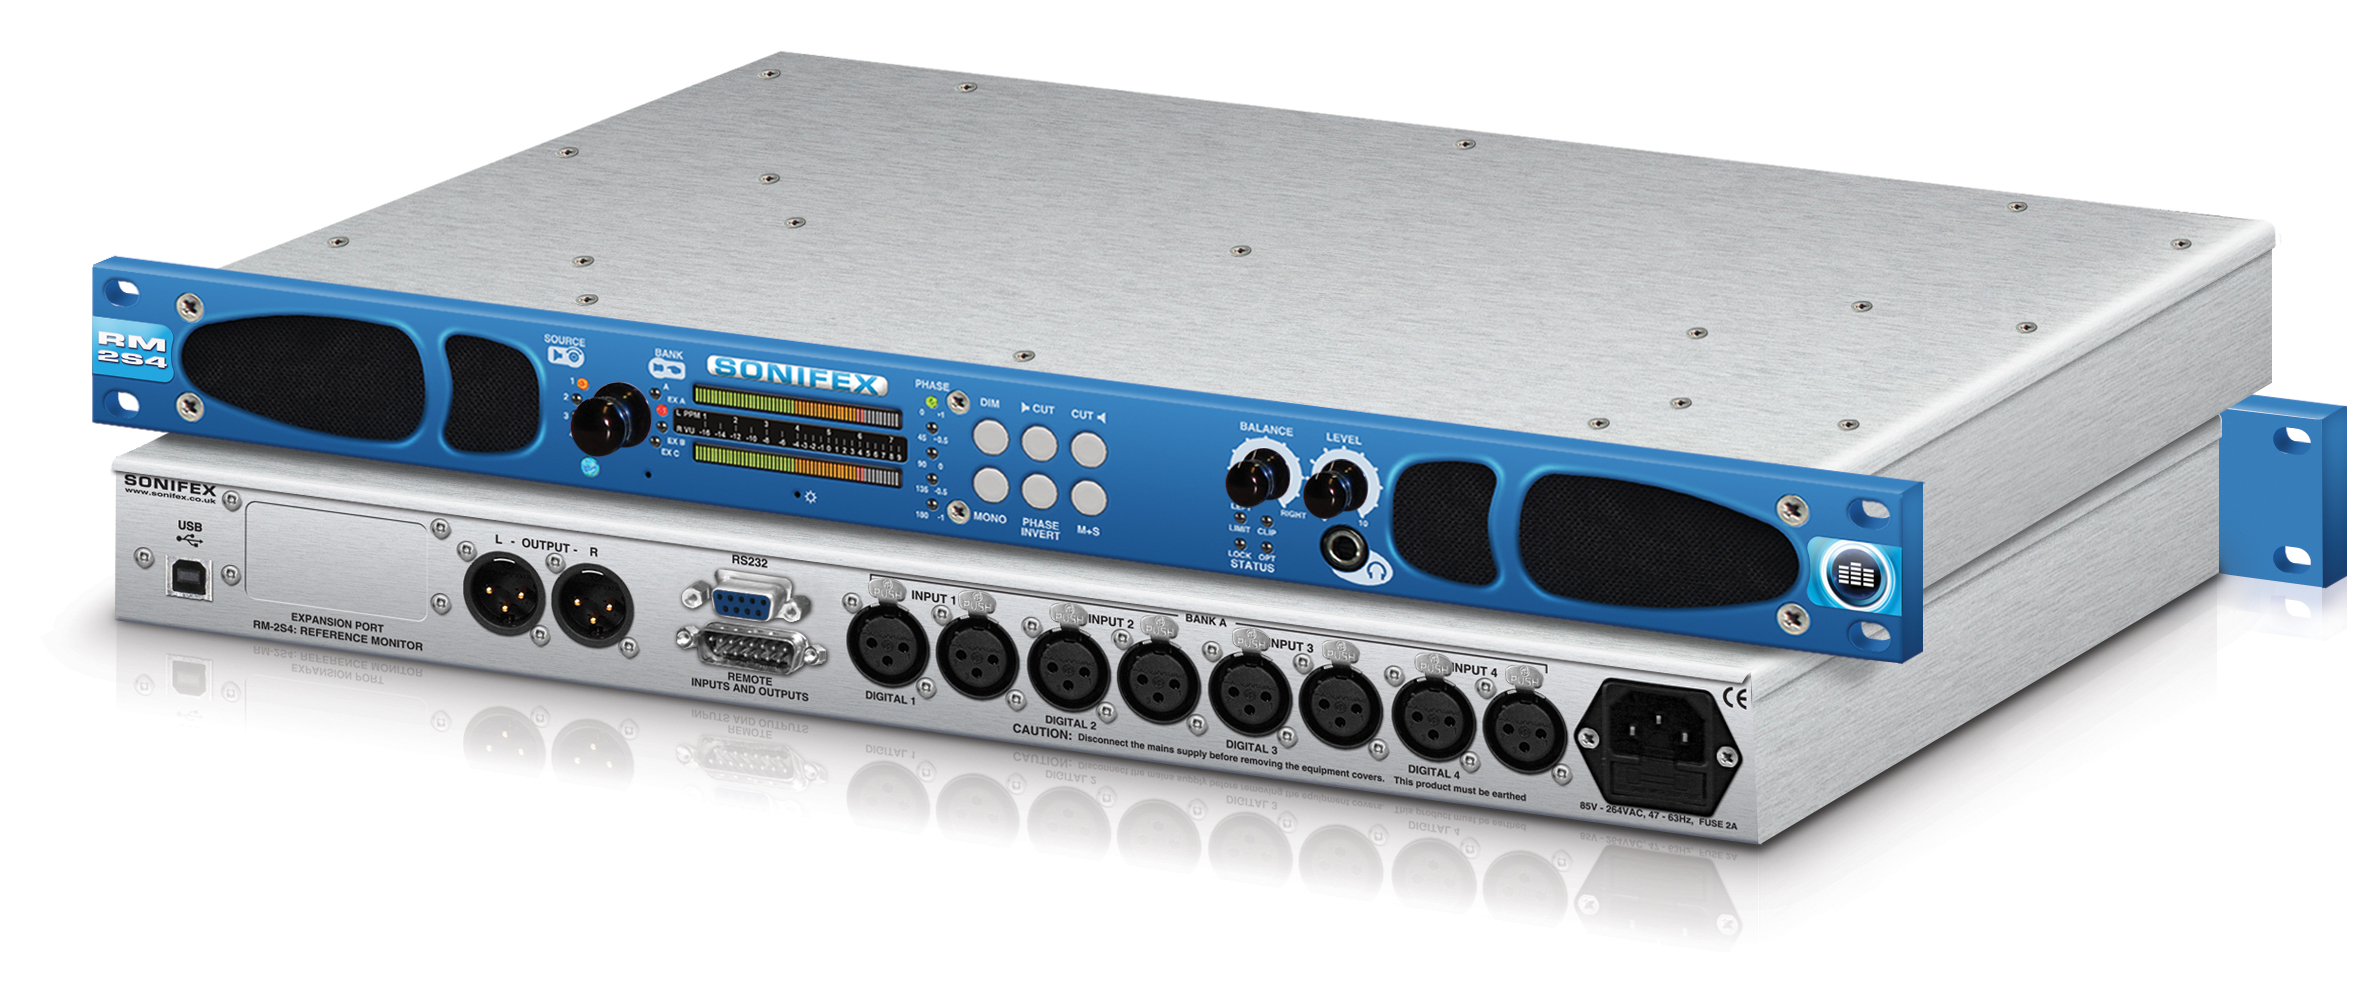 faulty Hdsdi And  sdi And Analog Audio Ppm And Speaker Monitoring Unit Video Production & Editing